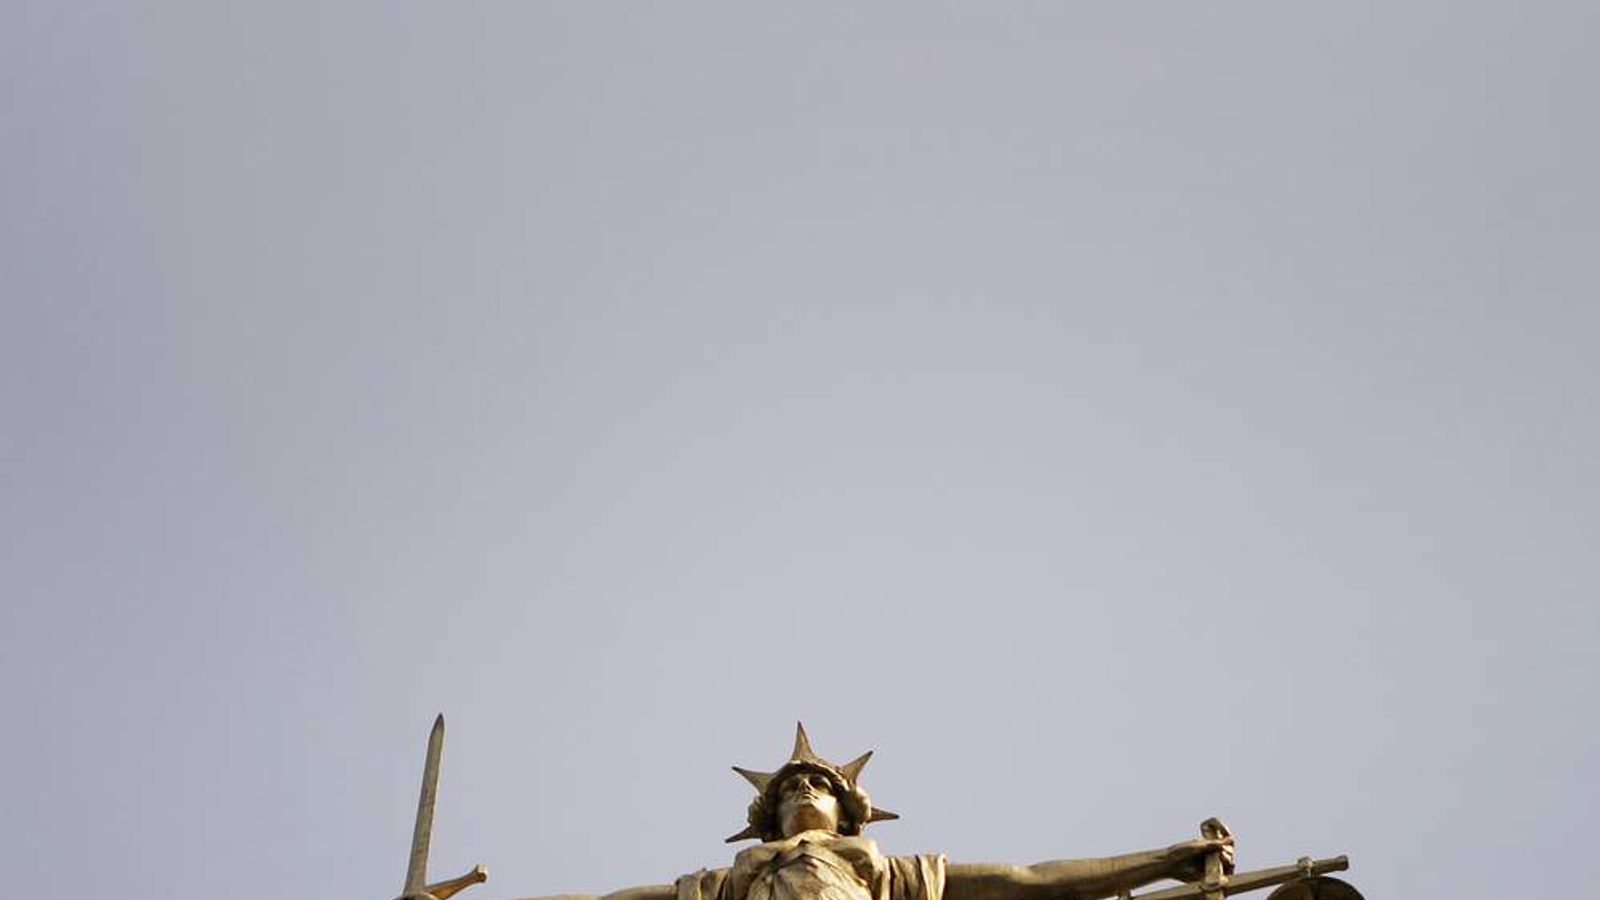 Old Bailey scales of justice